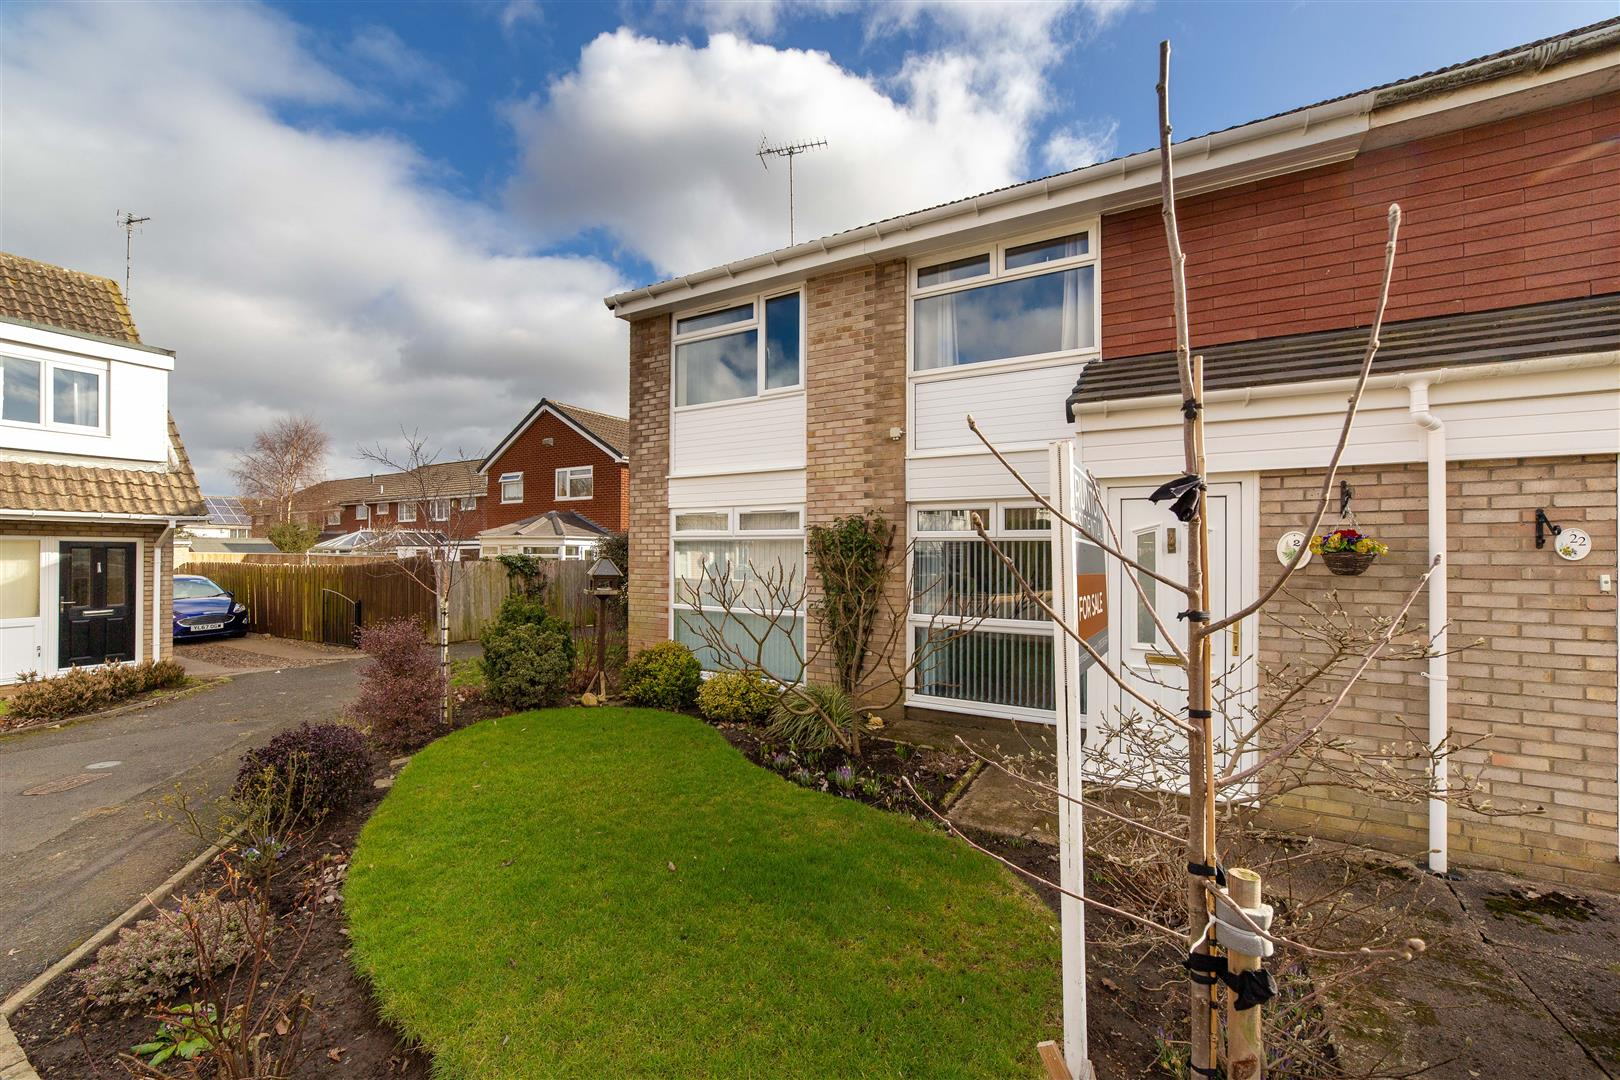 3 bed semi-detached house for sale in Kingston Park, NE3 2XH  - Property Image 1